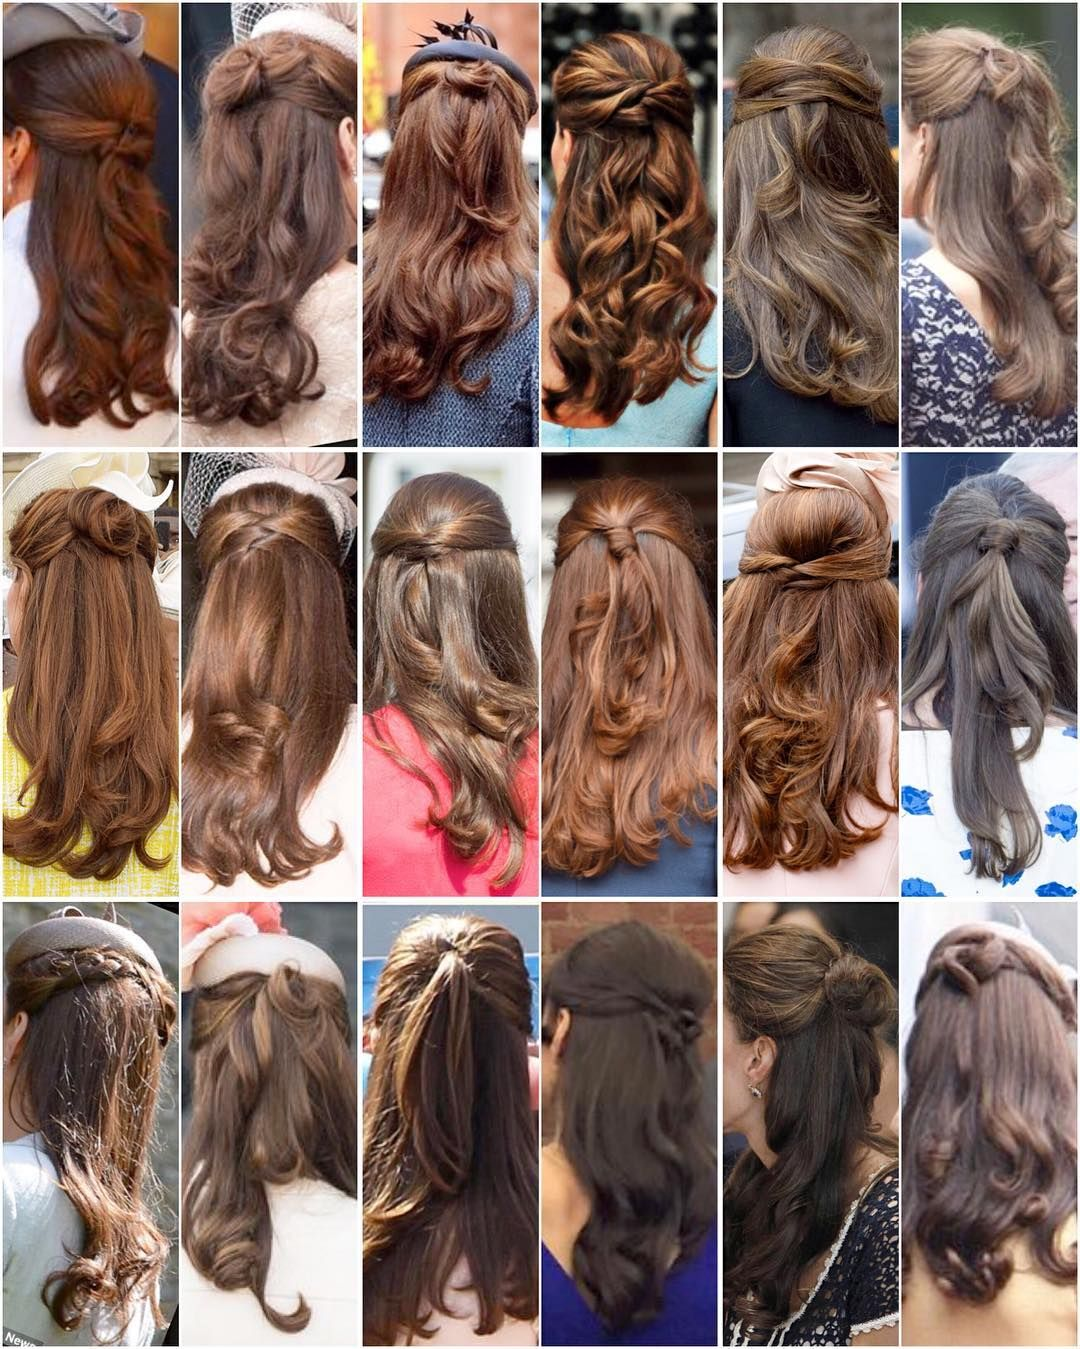 kate's beautiful half-updo's notice that each one is